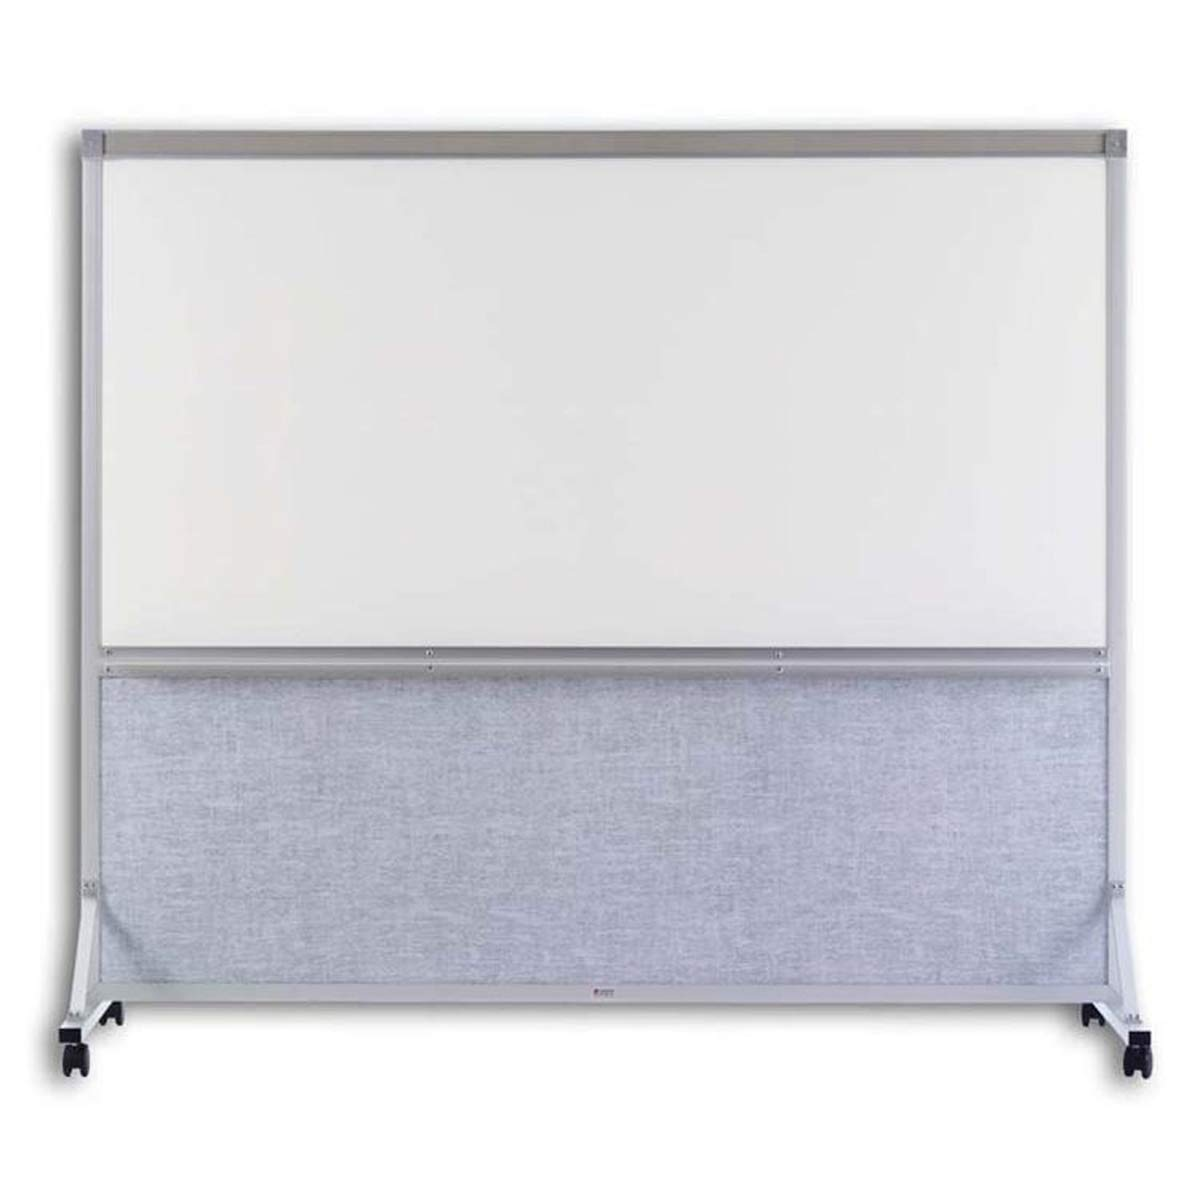 Marsh Industries BB646K297 64 x 72 in. Vinyl White Markerboard Double Duty Space Divider44; Sea Mist by Marsh Industries